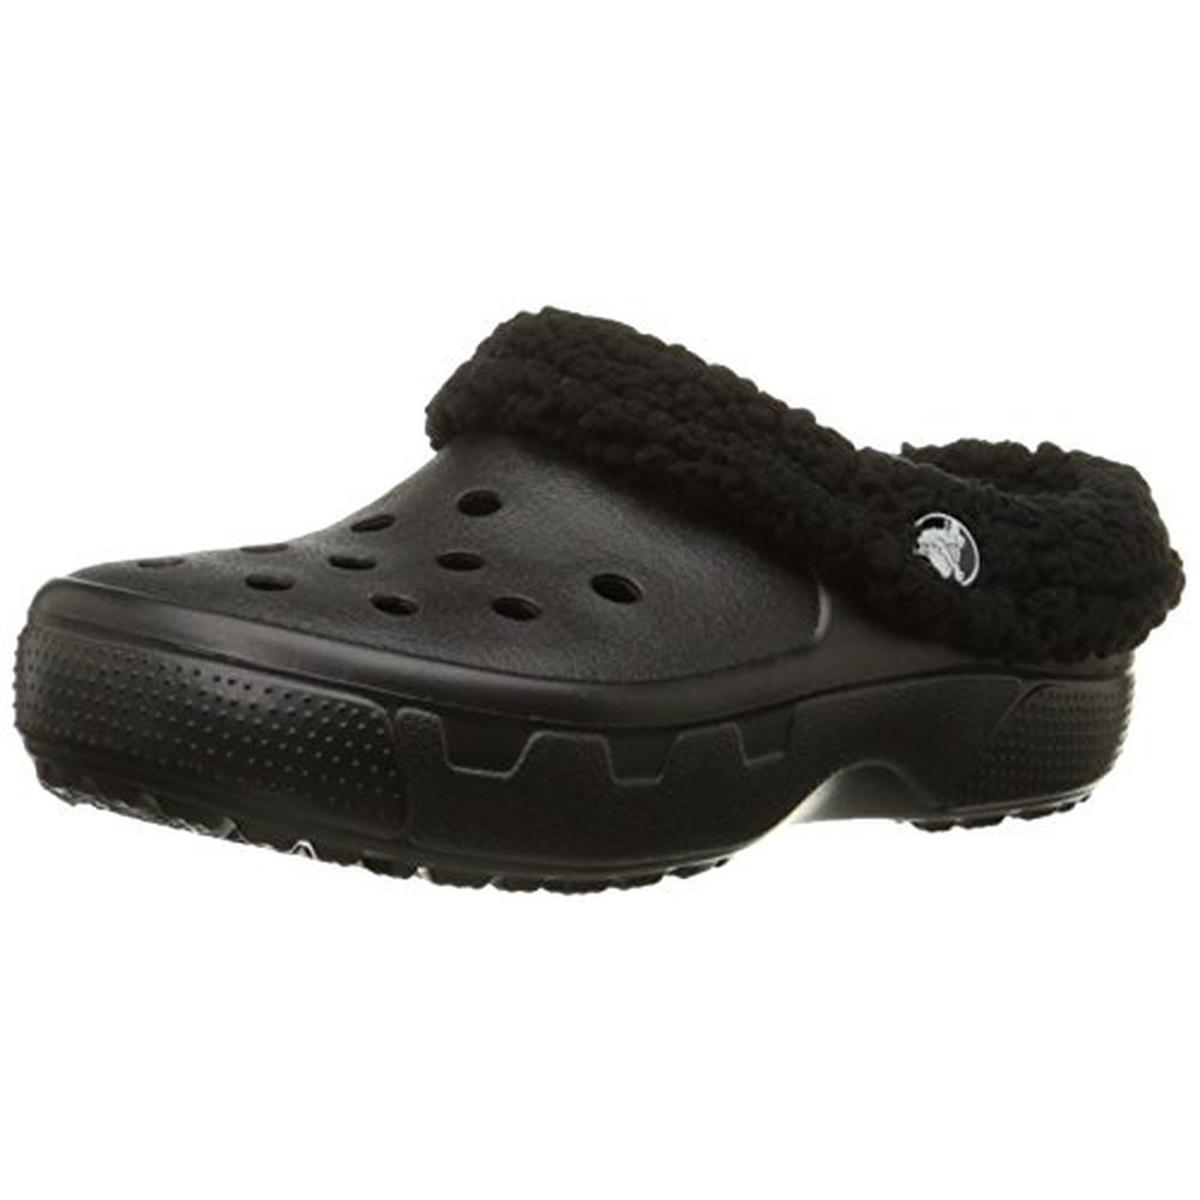 Crocs 3680 Boys Mammoth Faux Fur Slip On Clogs Shoes BHFO | eBay